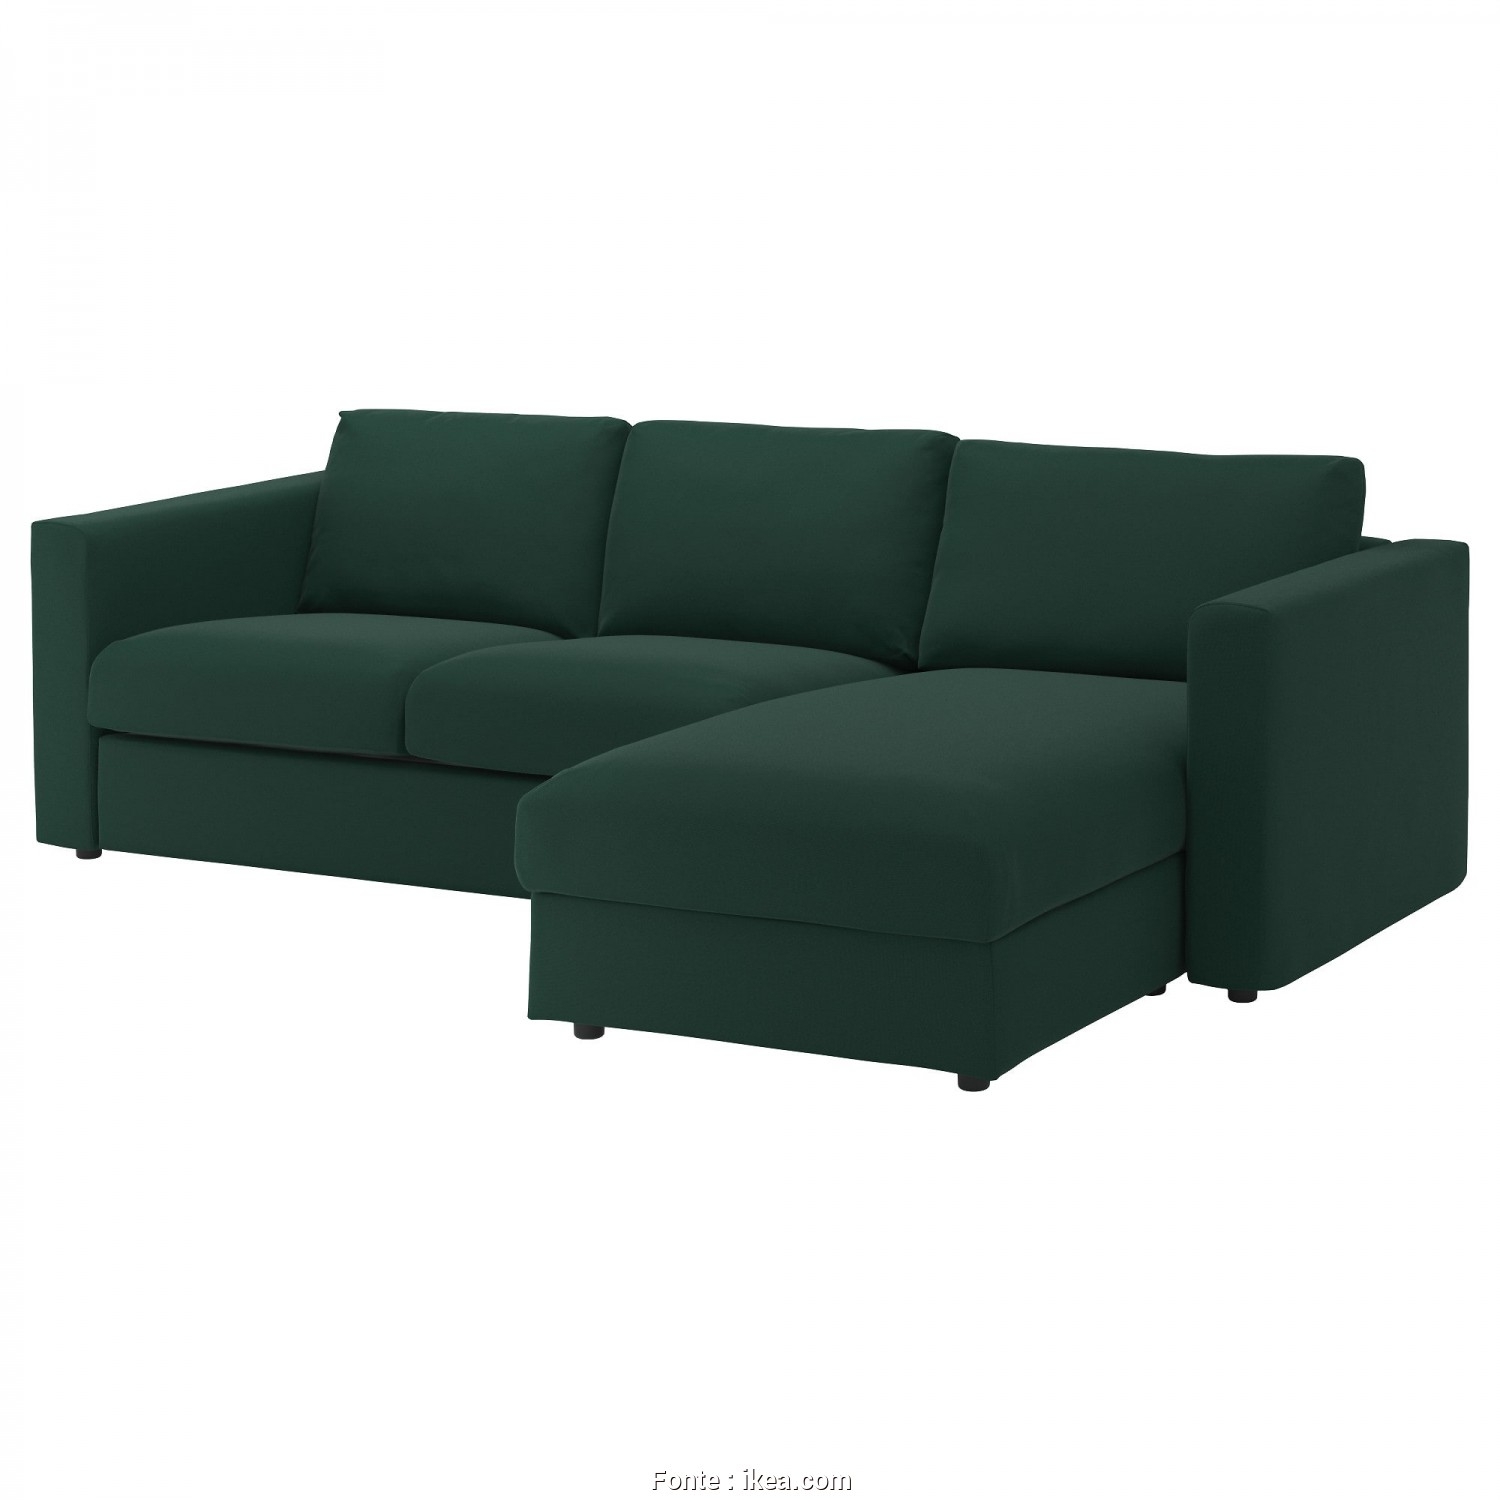 Bello 5 Ikea Klippan 3 Seater Sofa Dimensions